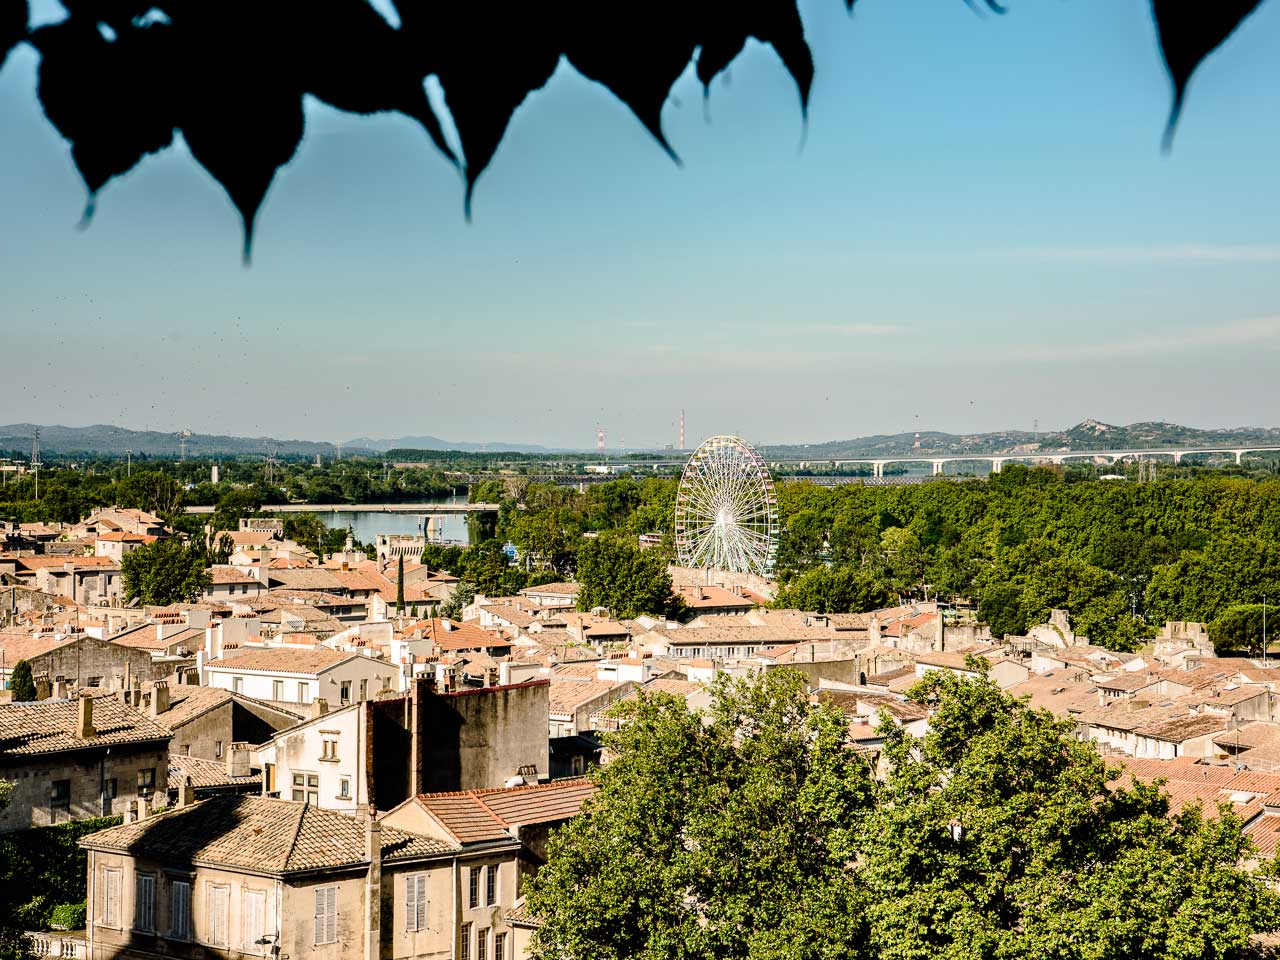 The rocher des doms has a great view of the skyline of Avignon France.